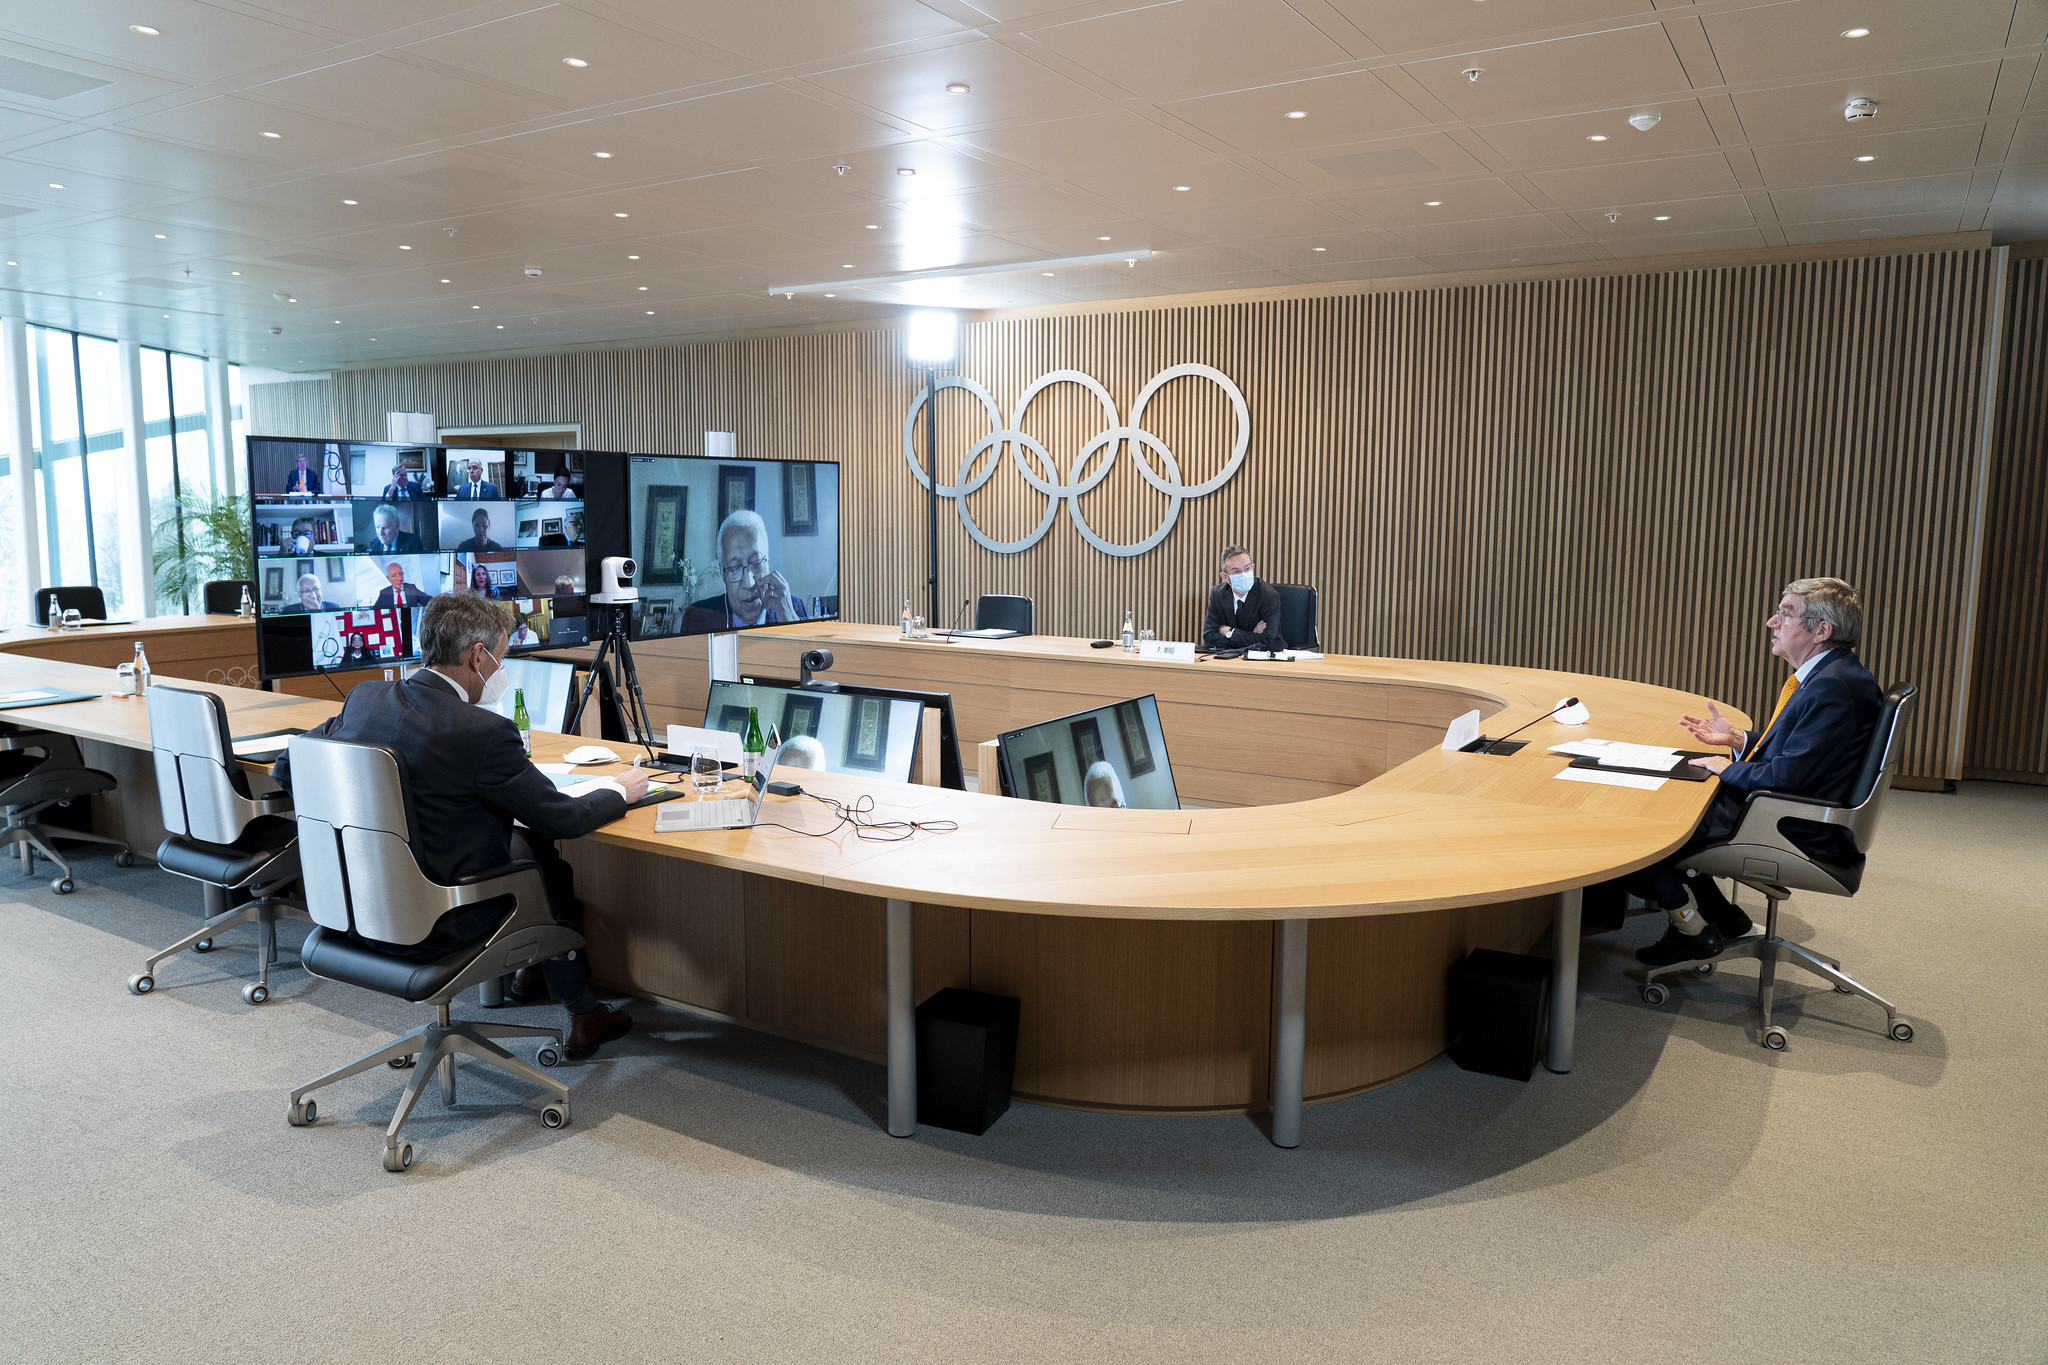 The IOC Executive Board has decided to propose Athens as the venue for the 2025 IOC Session ©IOC